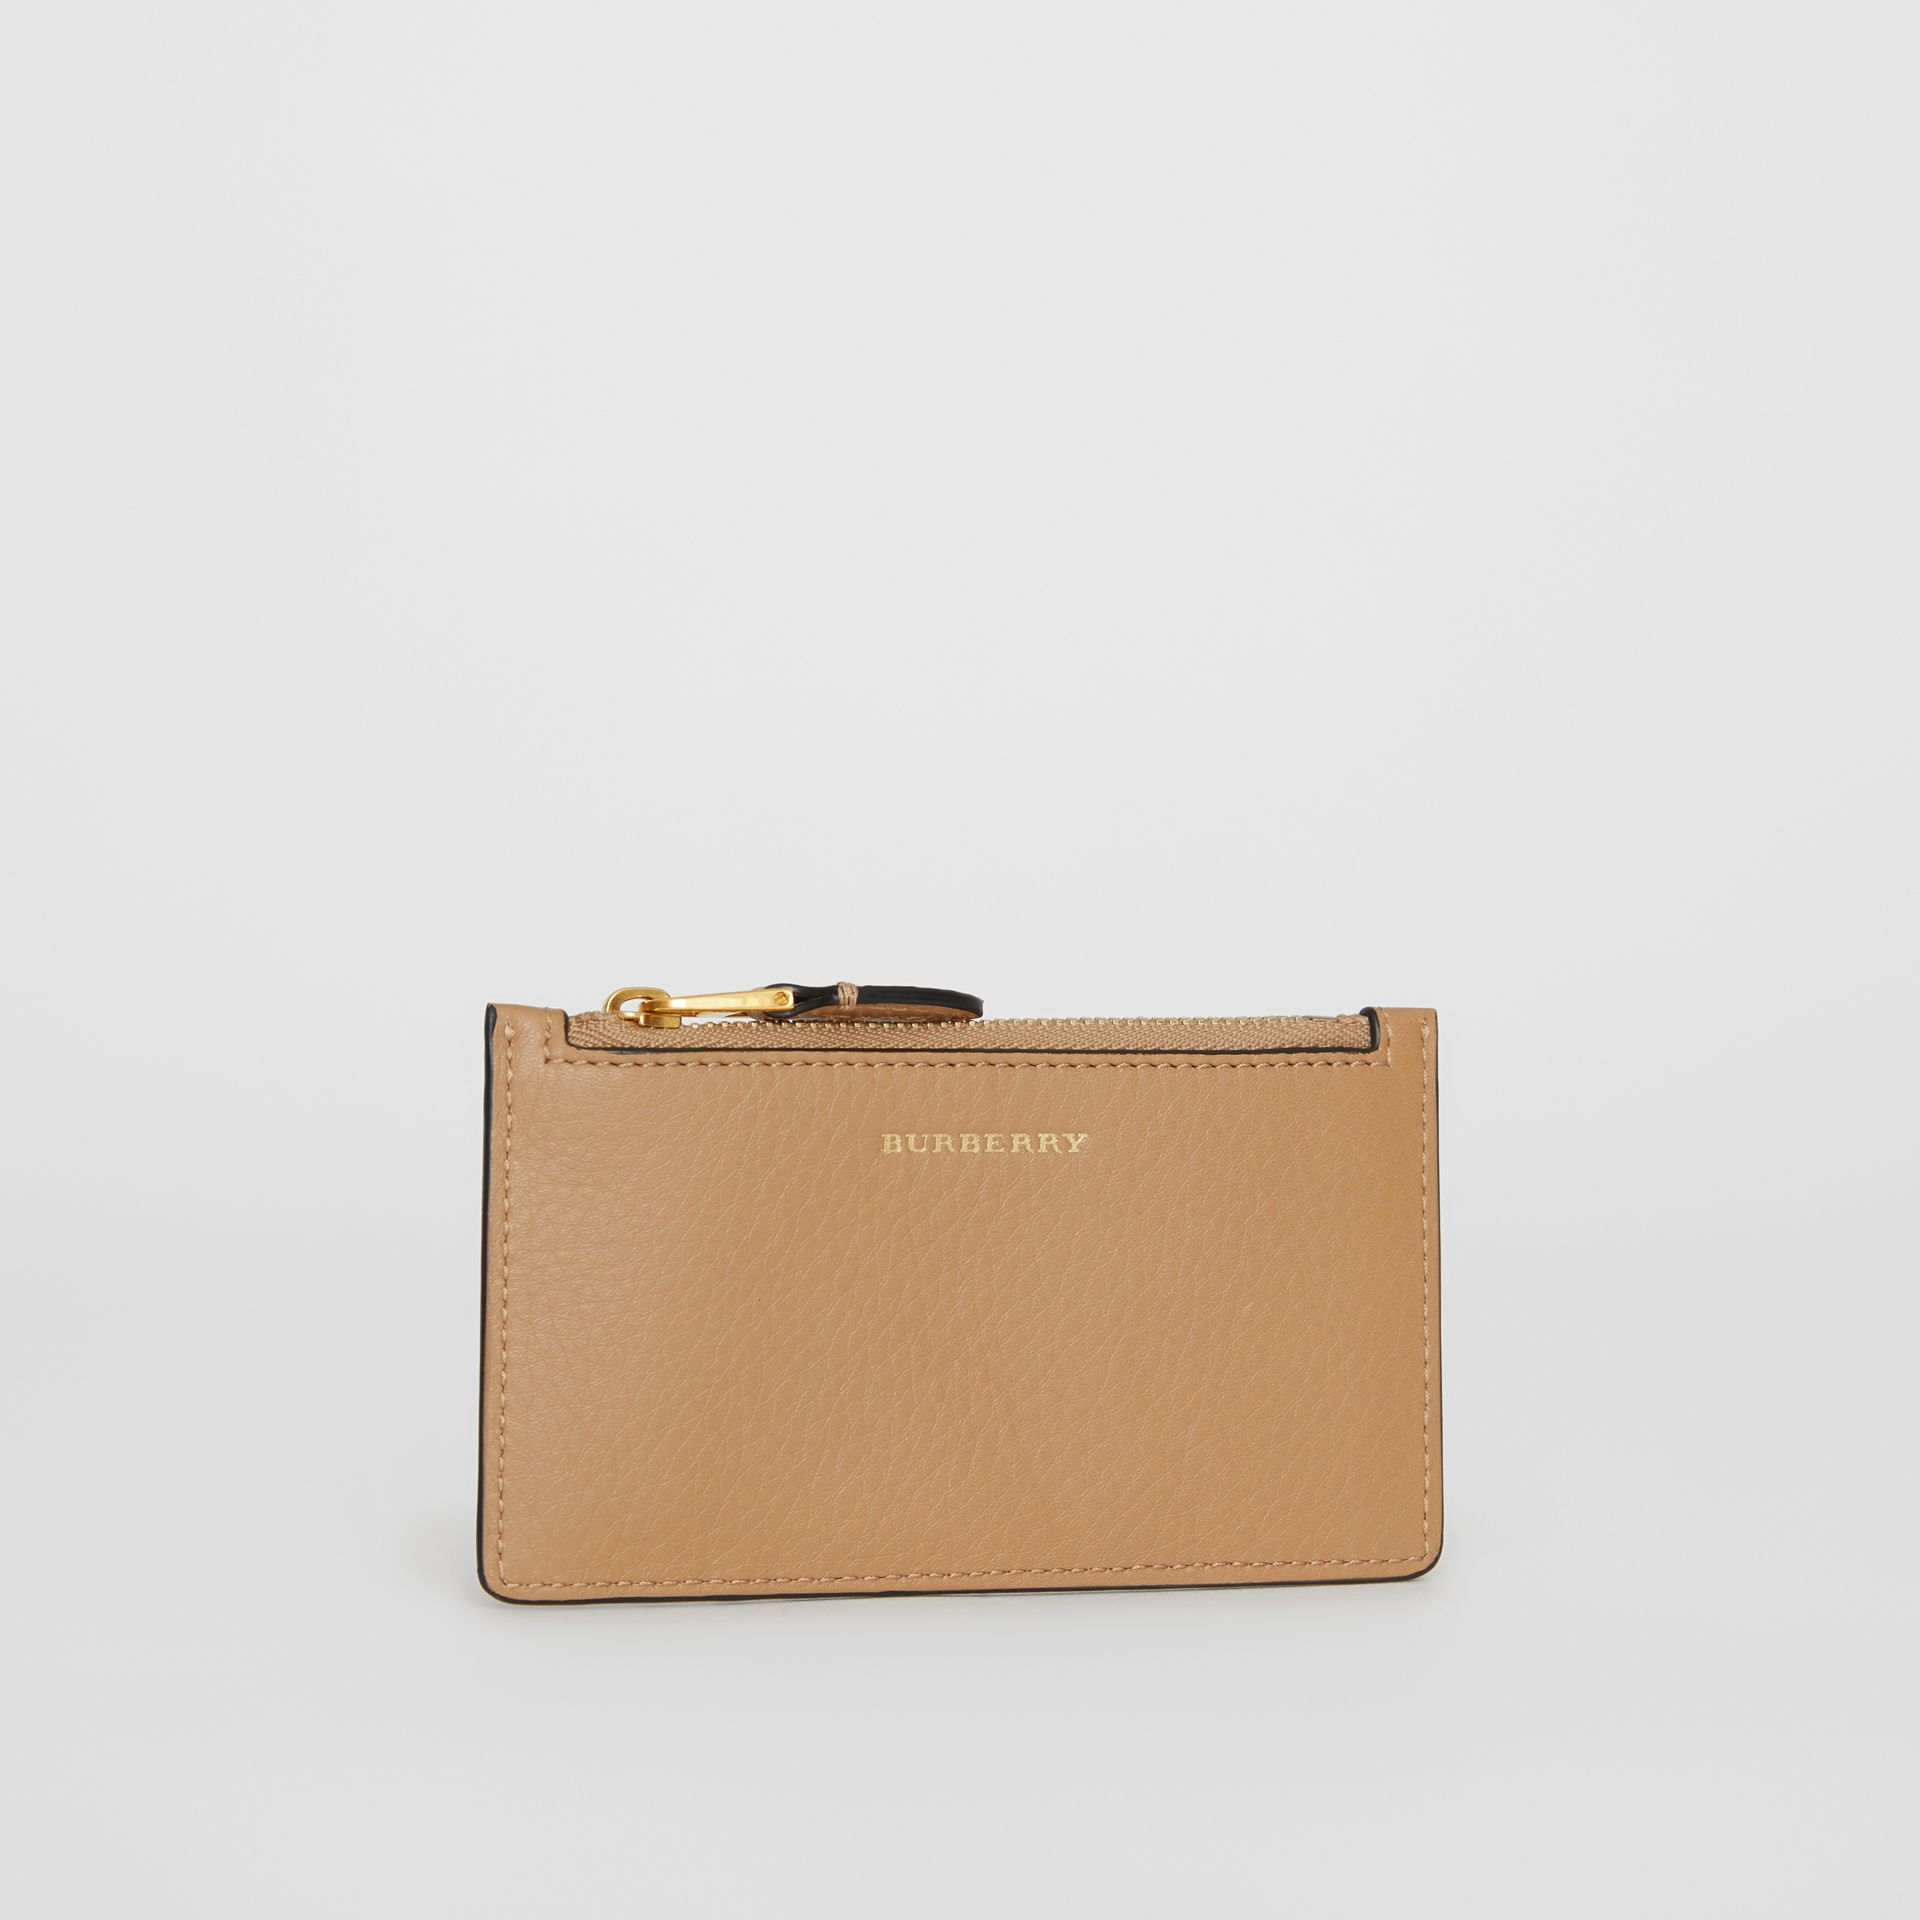 Two-tone Leather Card Case in Light Camel - Women | Burberry Singapore - gallery image 4